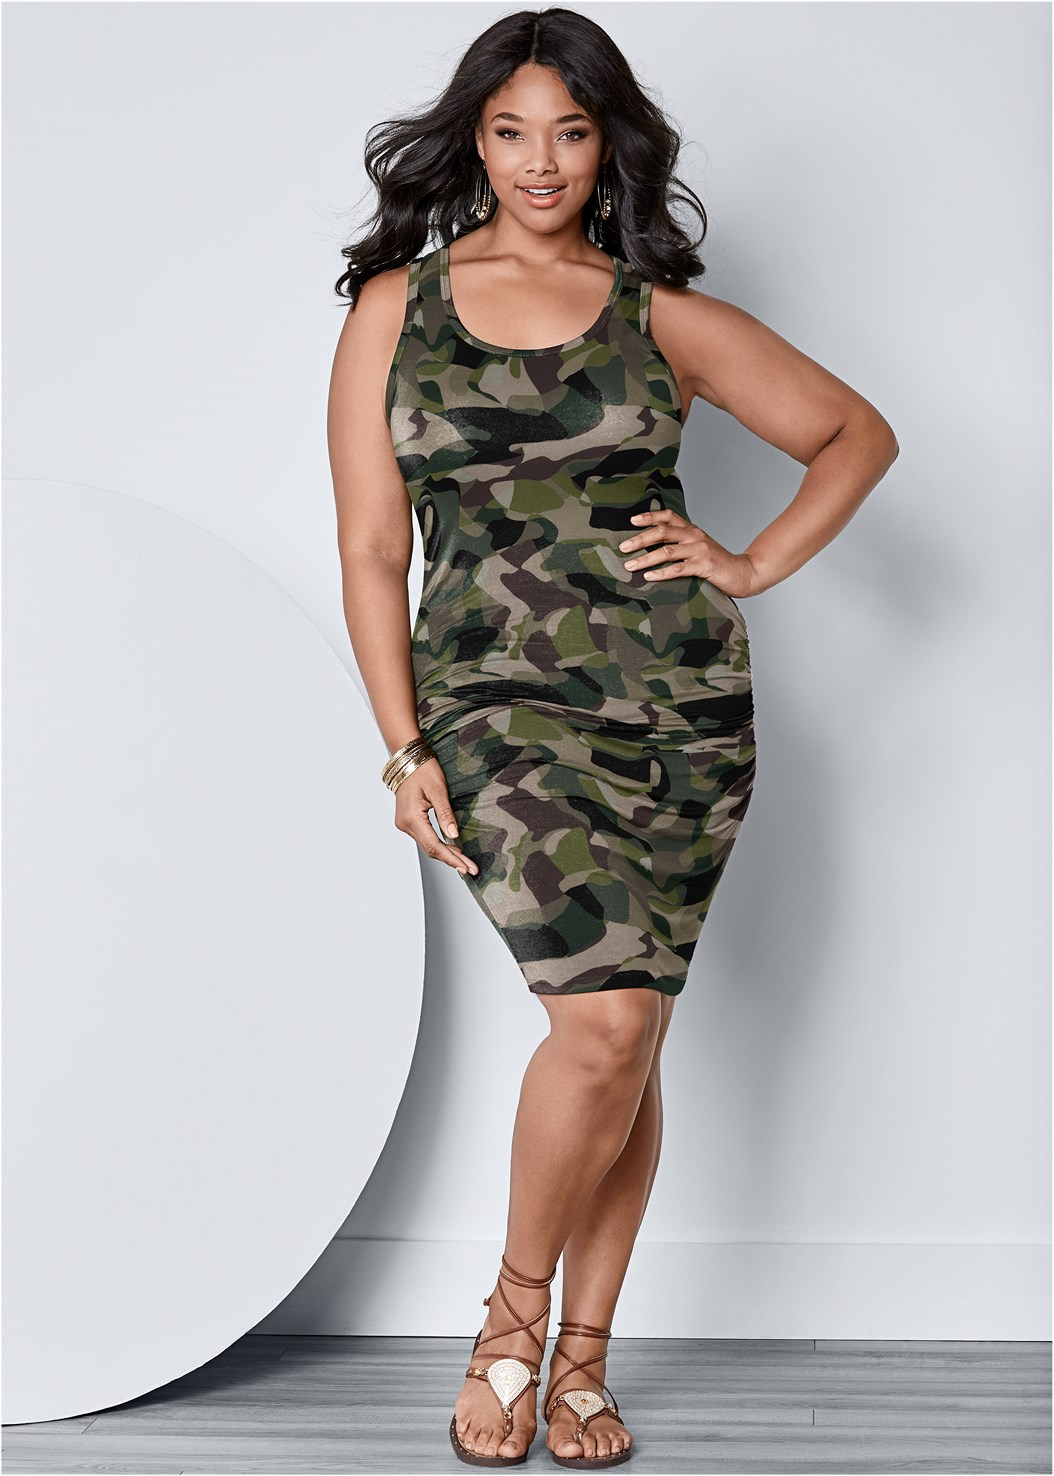 Sleeveless Ruched Bodycon Midi Dress,Lace Up Gladiator Sandals